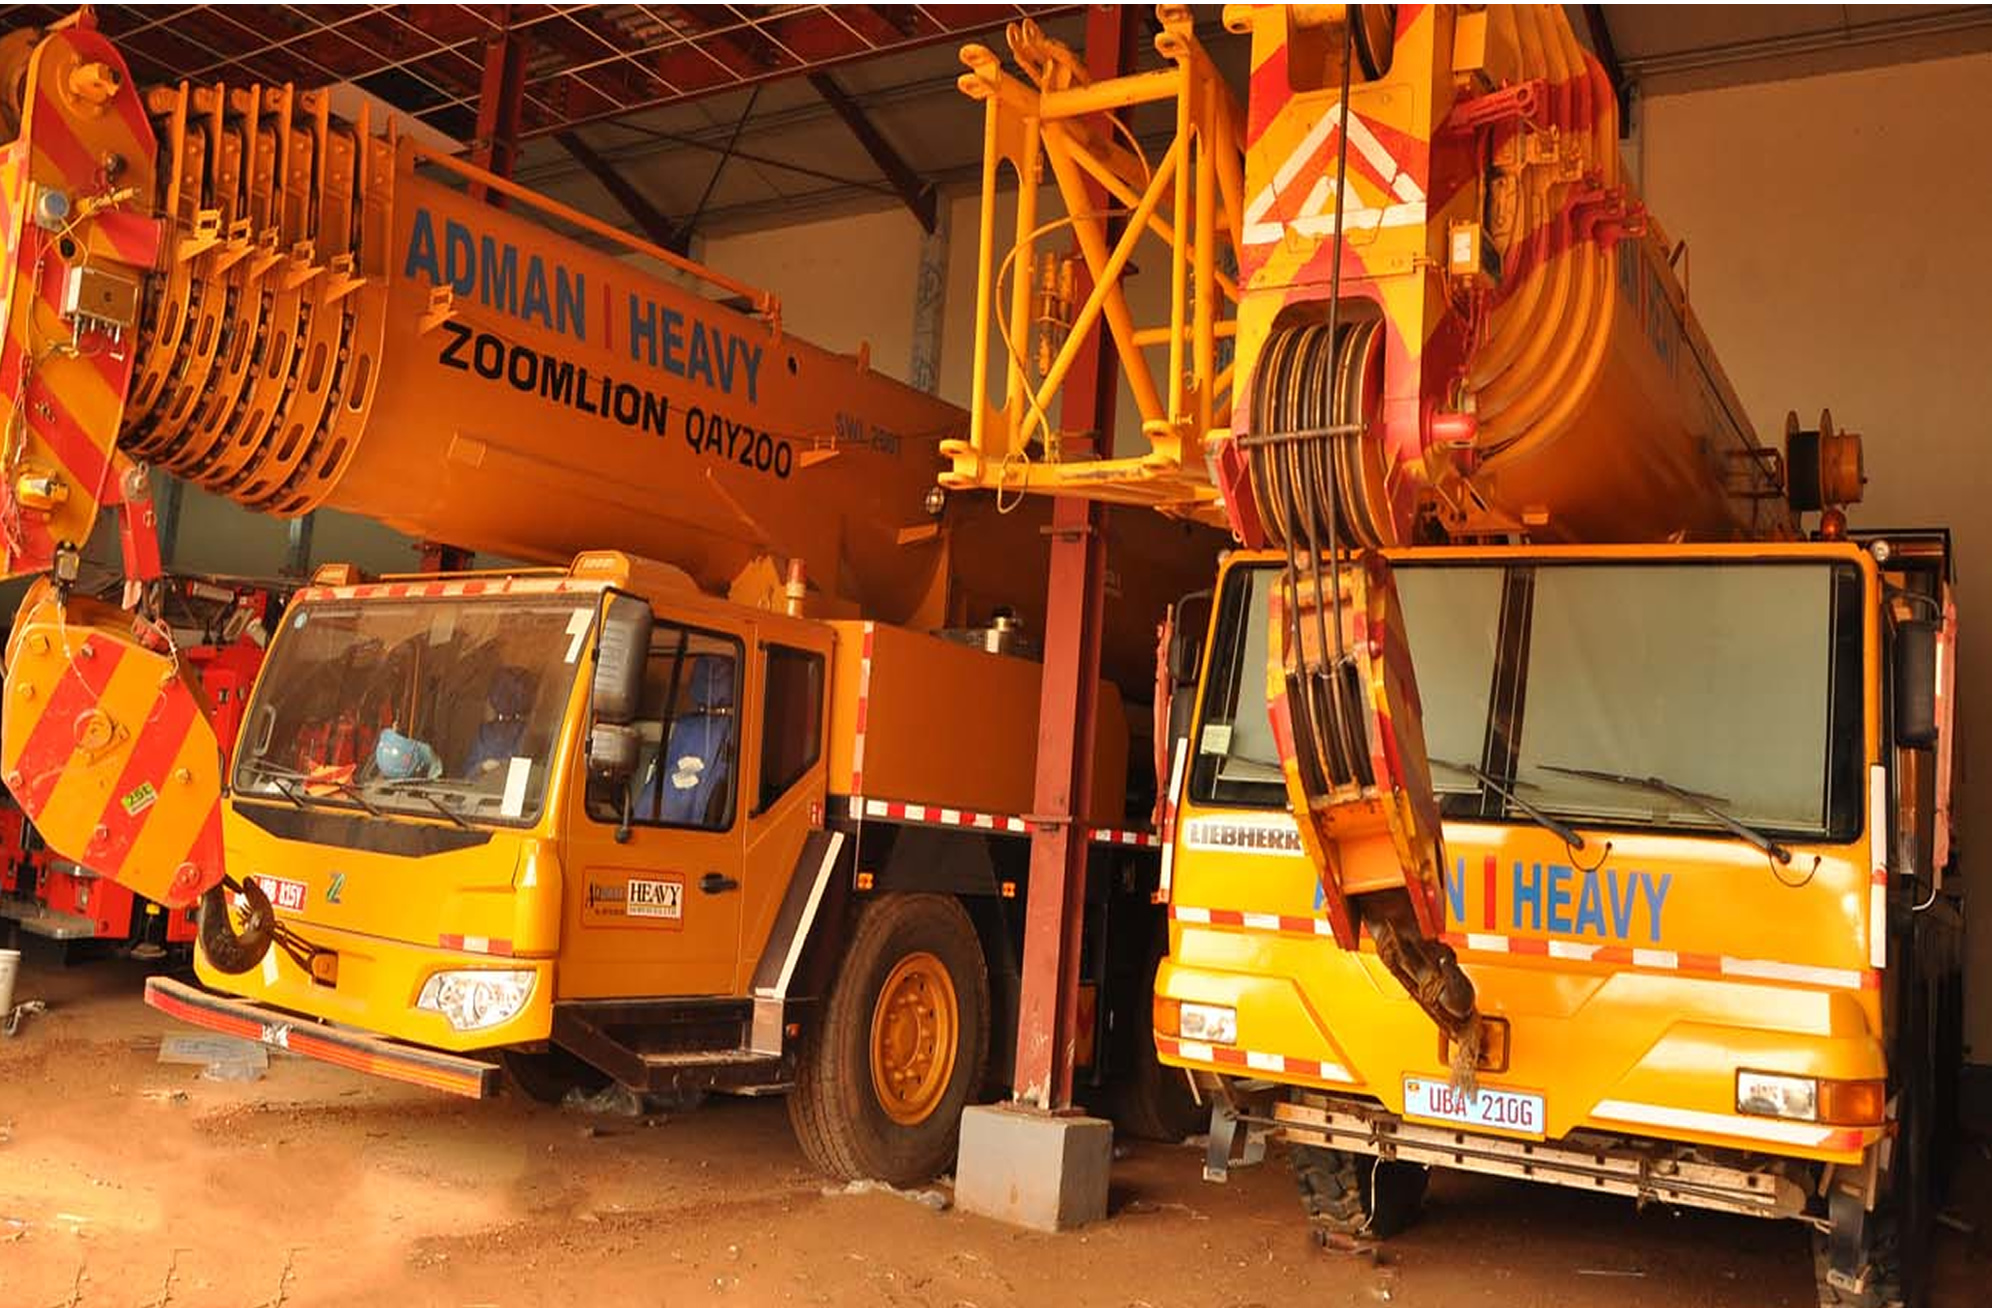 Adman Cranes 200TN and 100 TN